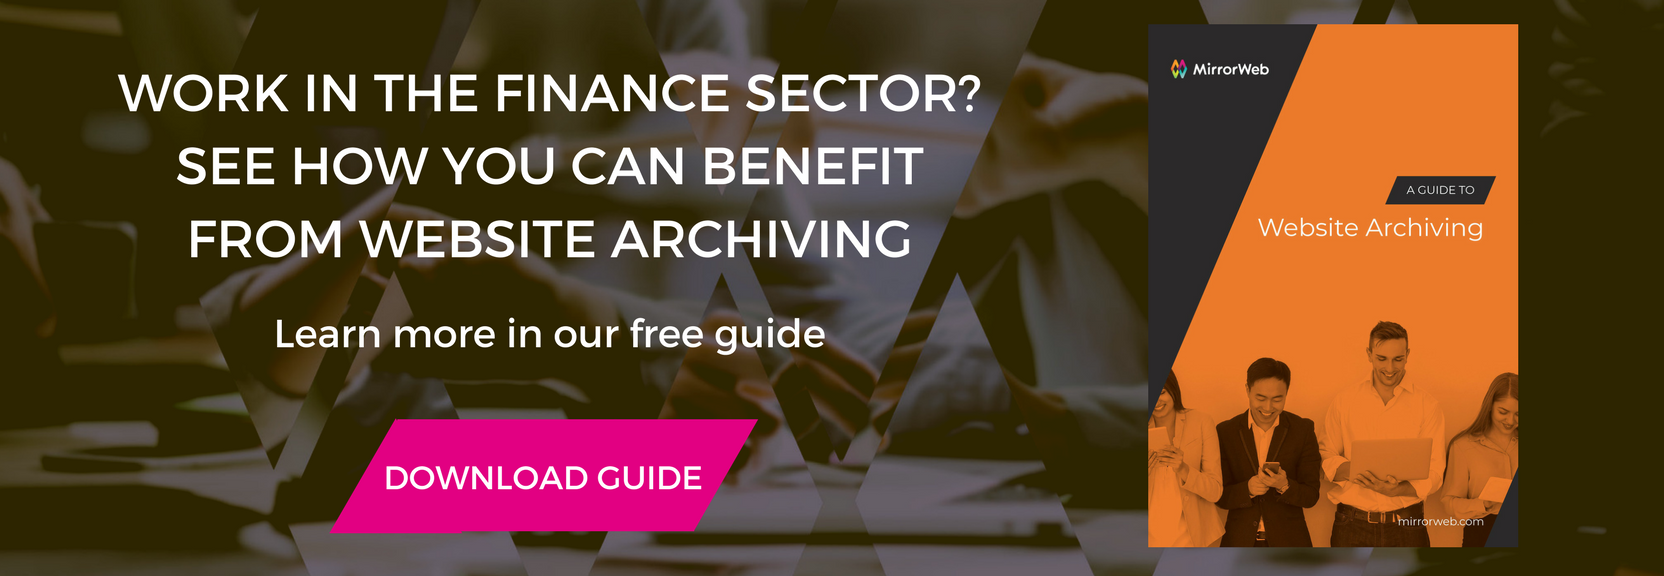 Download the Website Archiving Guide